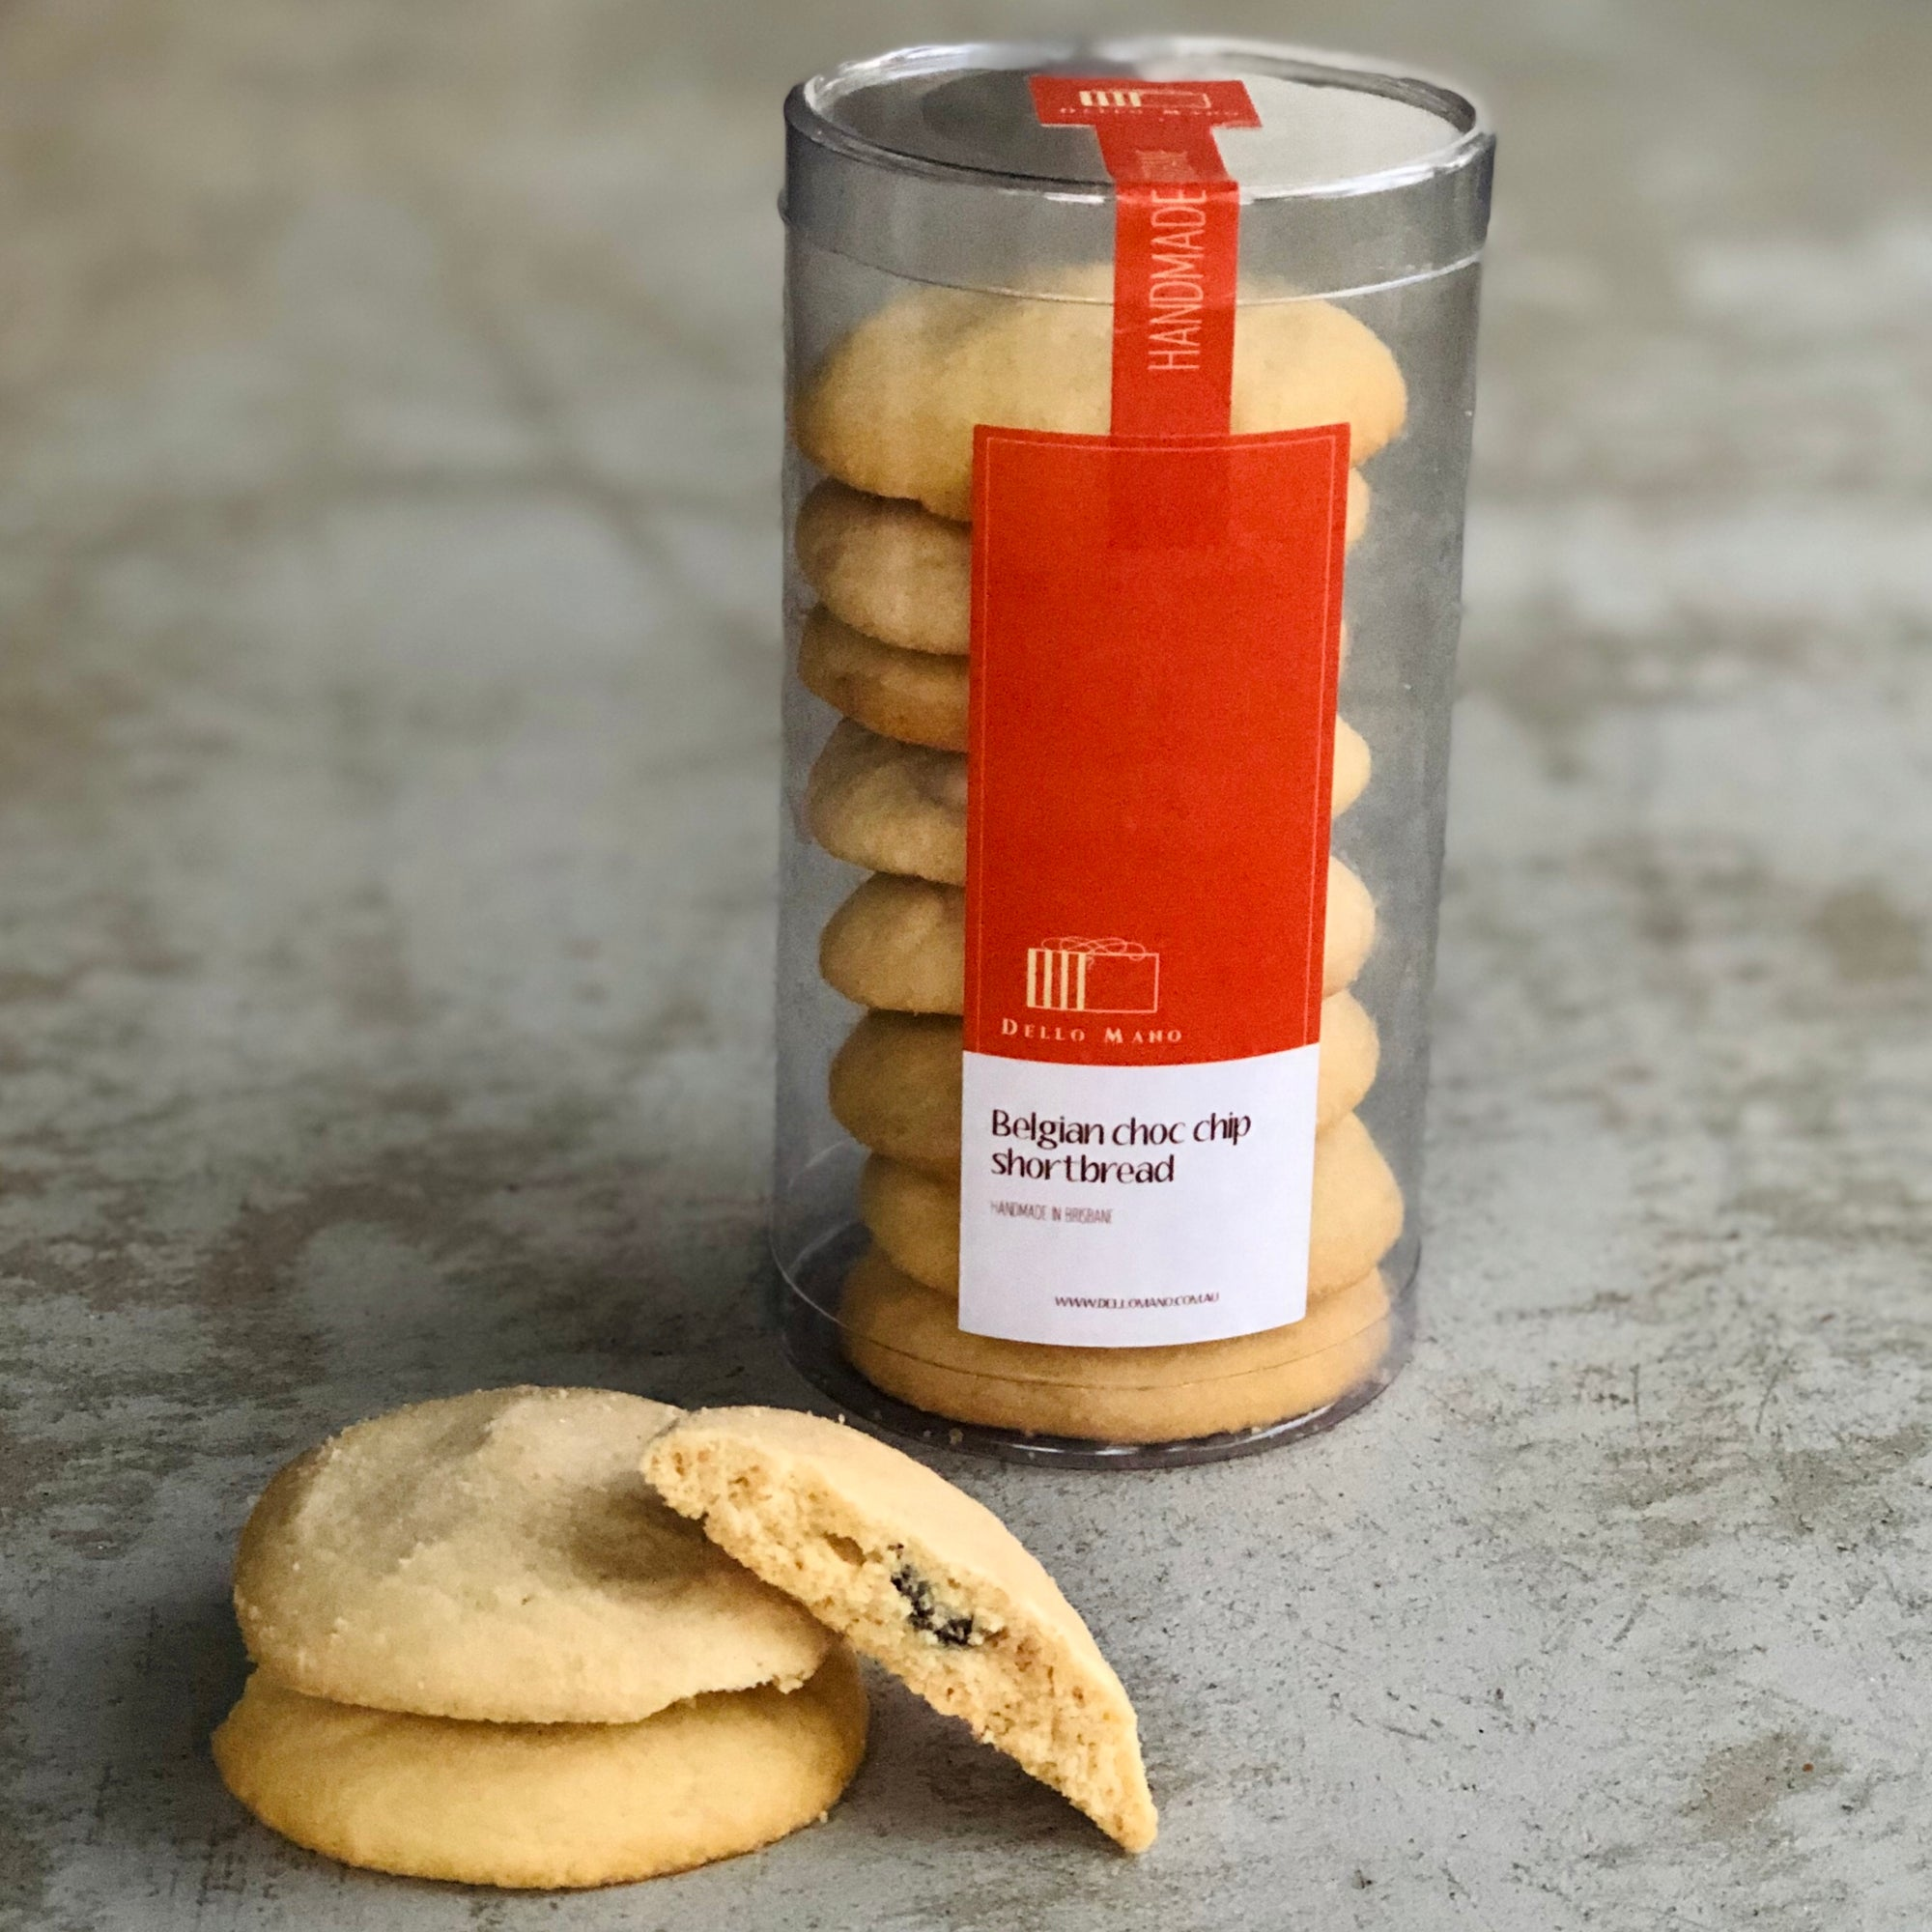 A broken open Chocolate Chip Shortbread cookie in front of a tube of handmade cookie gift